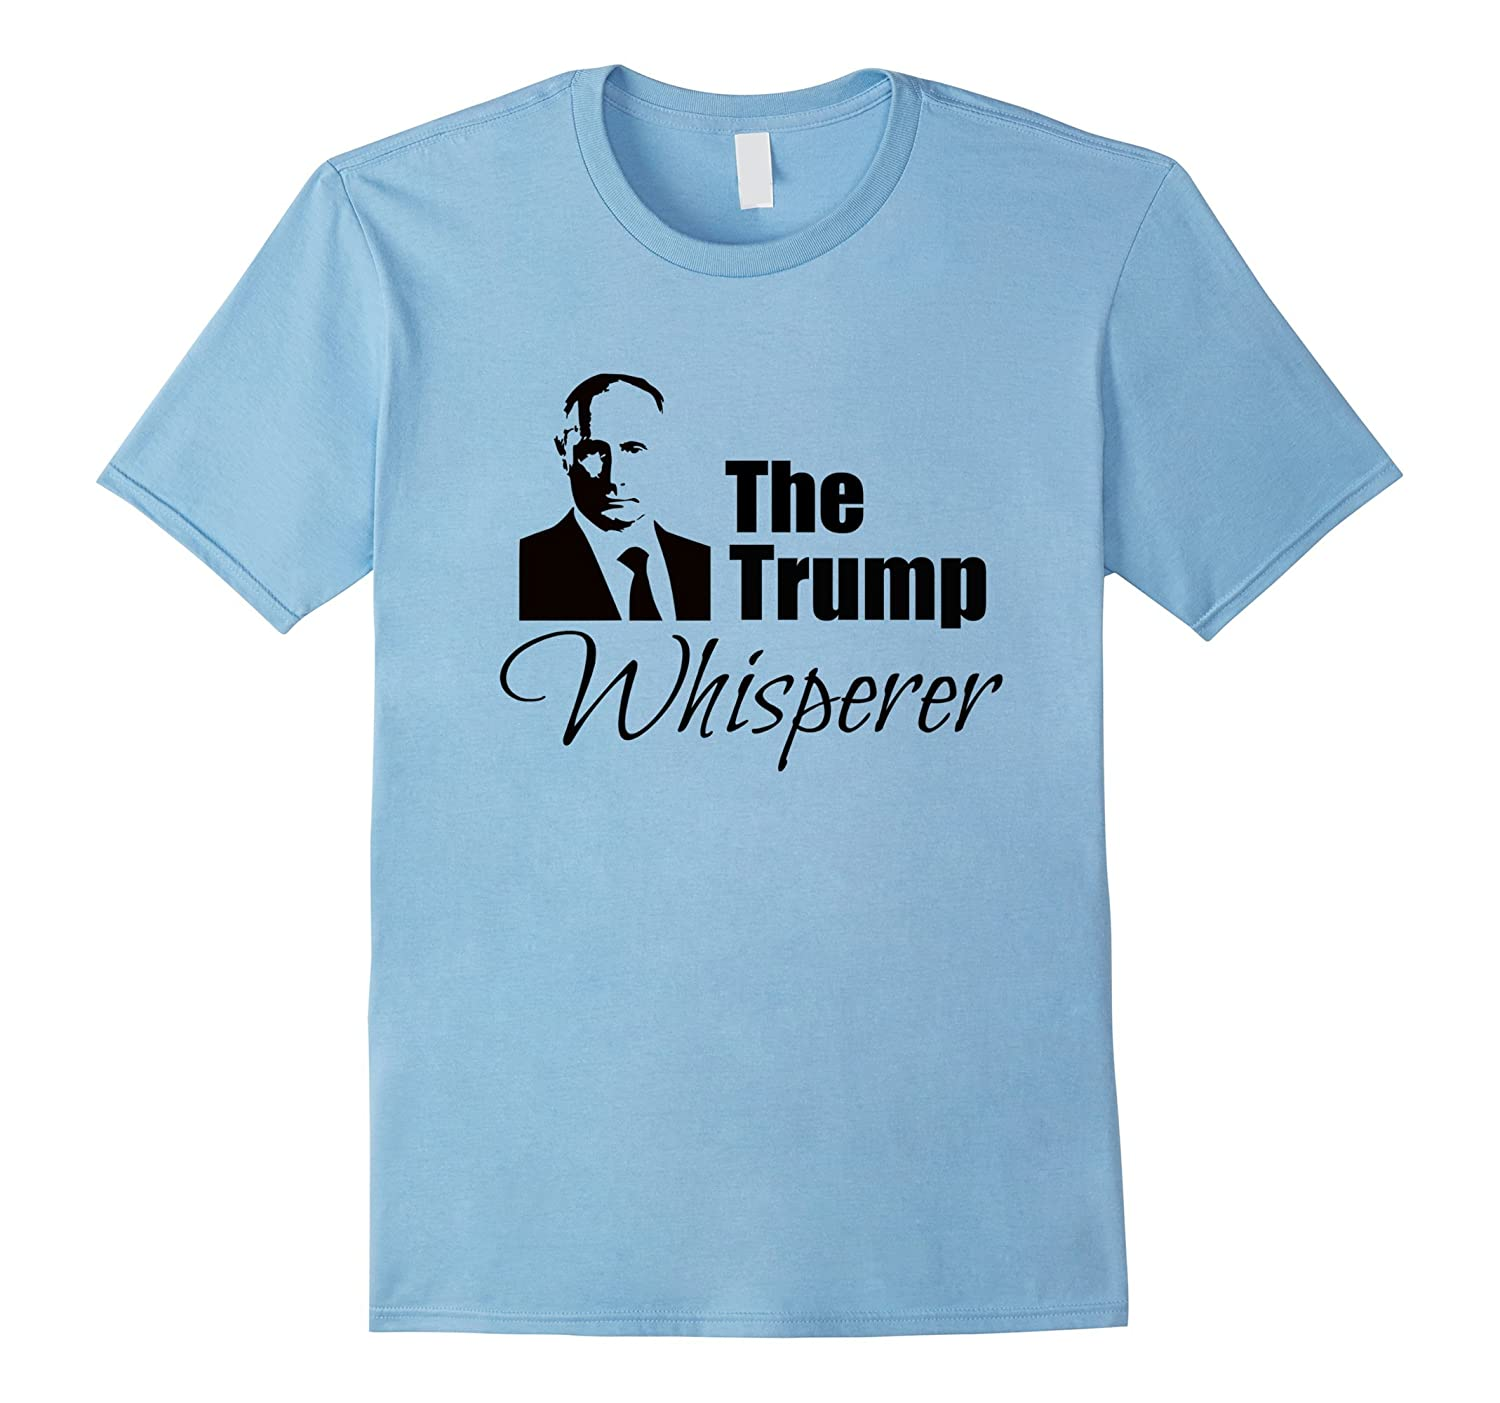 Putin as The Trump Whisperer Funny Russia Collusion T-Shirt-BN